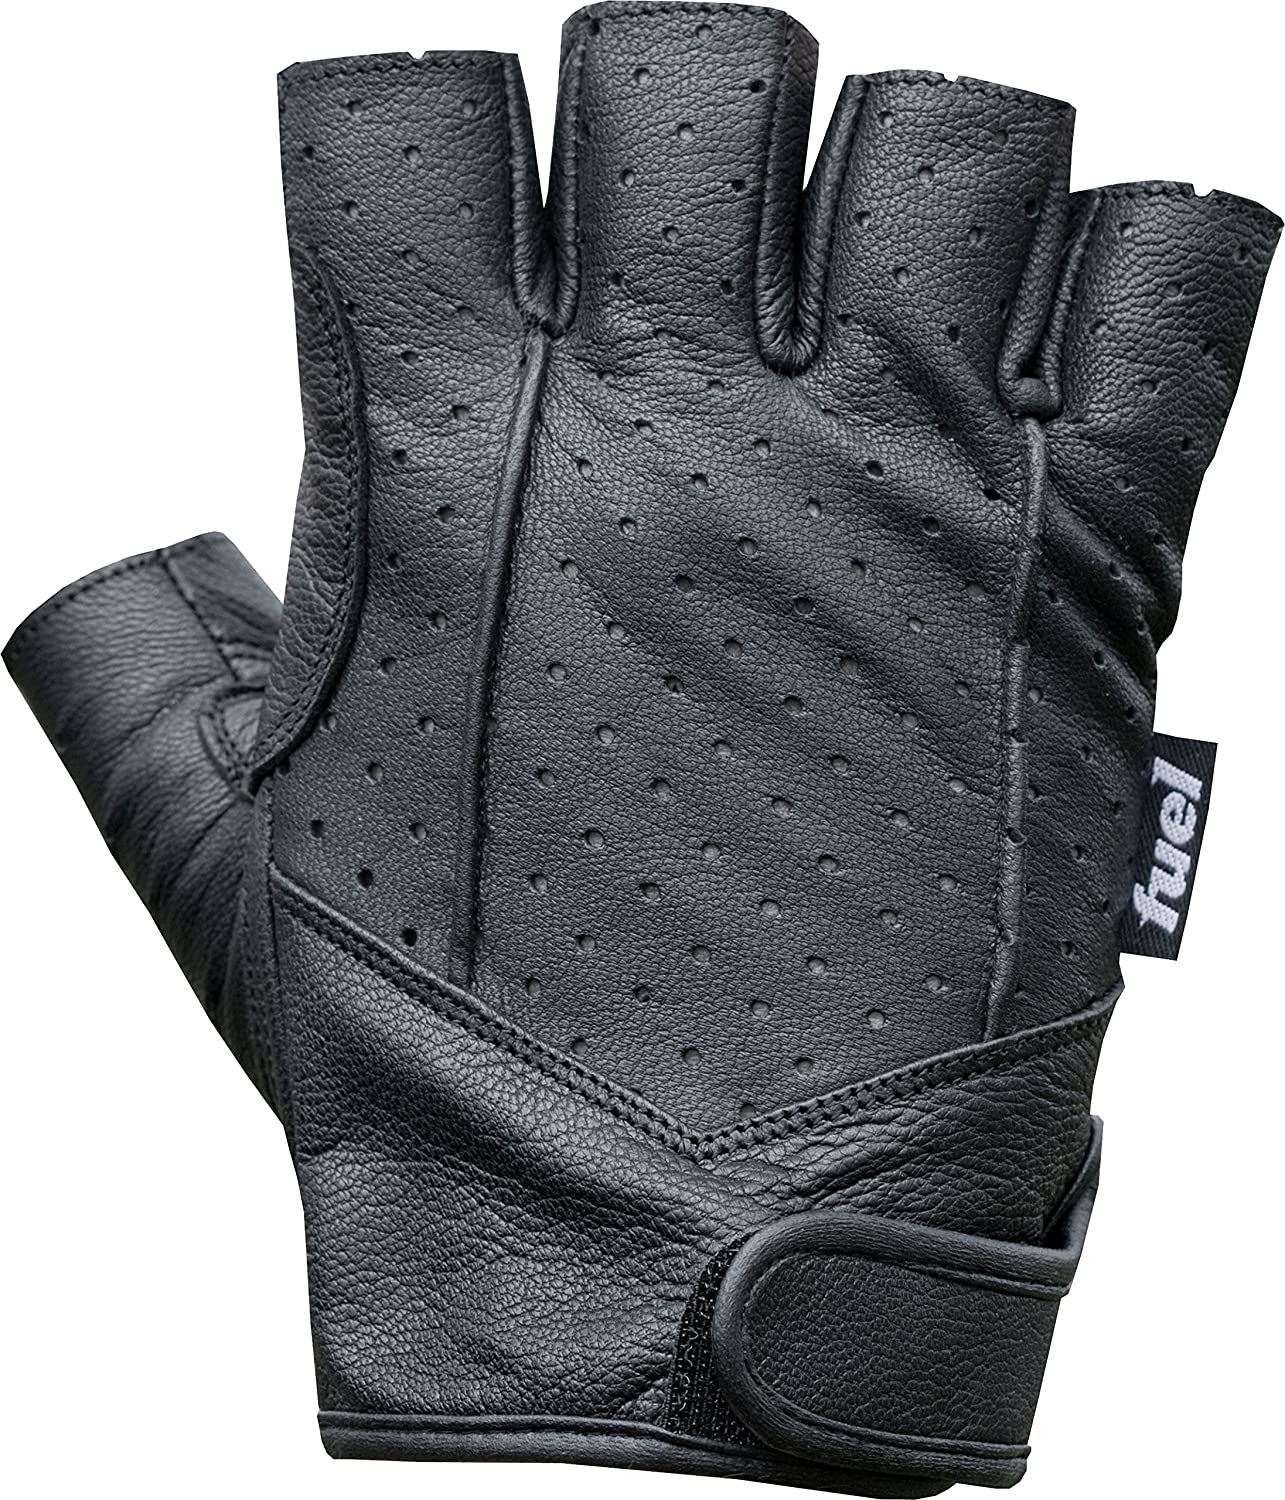 Fingerless gloves canada - Fuel Helmets Fuel Fingerless Gloves Black Biking Gloves Amazon Canada